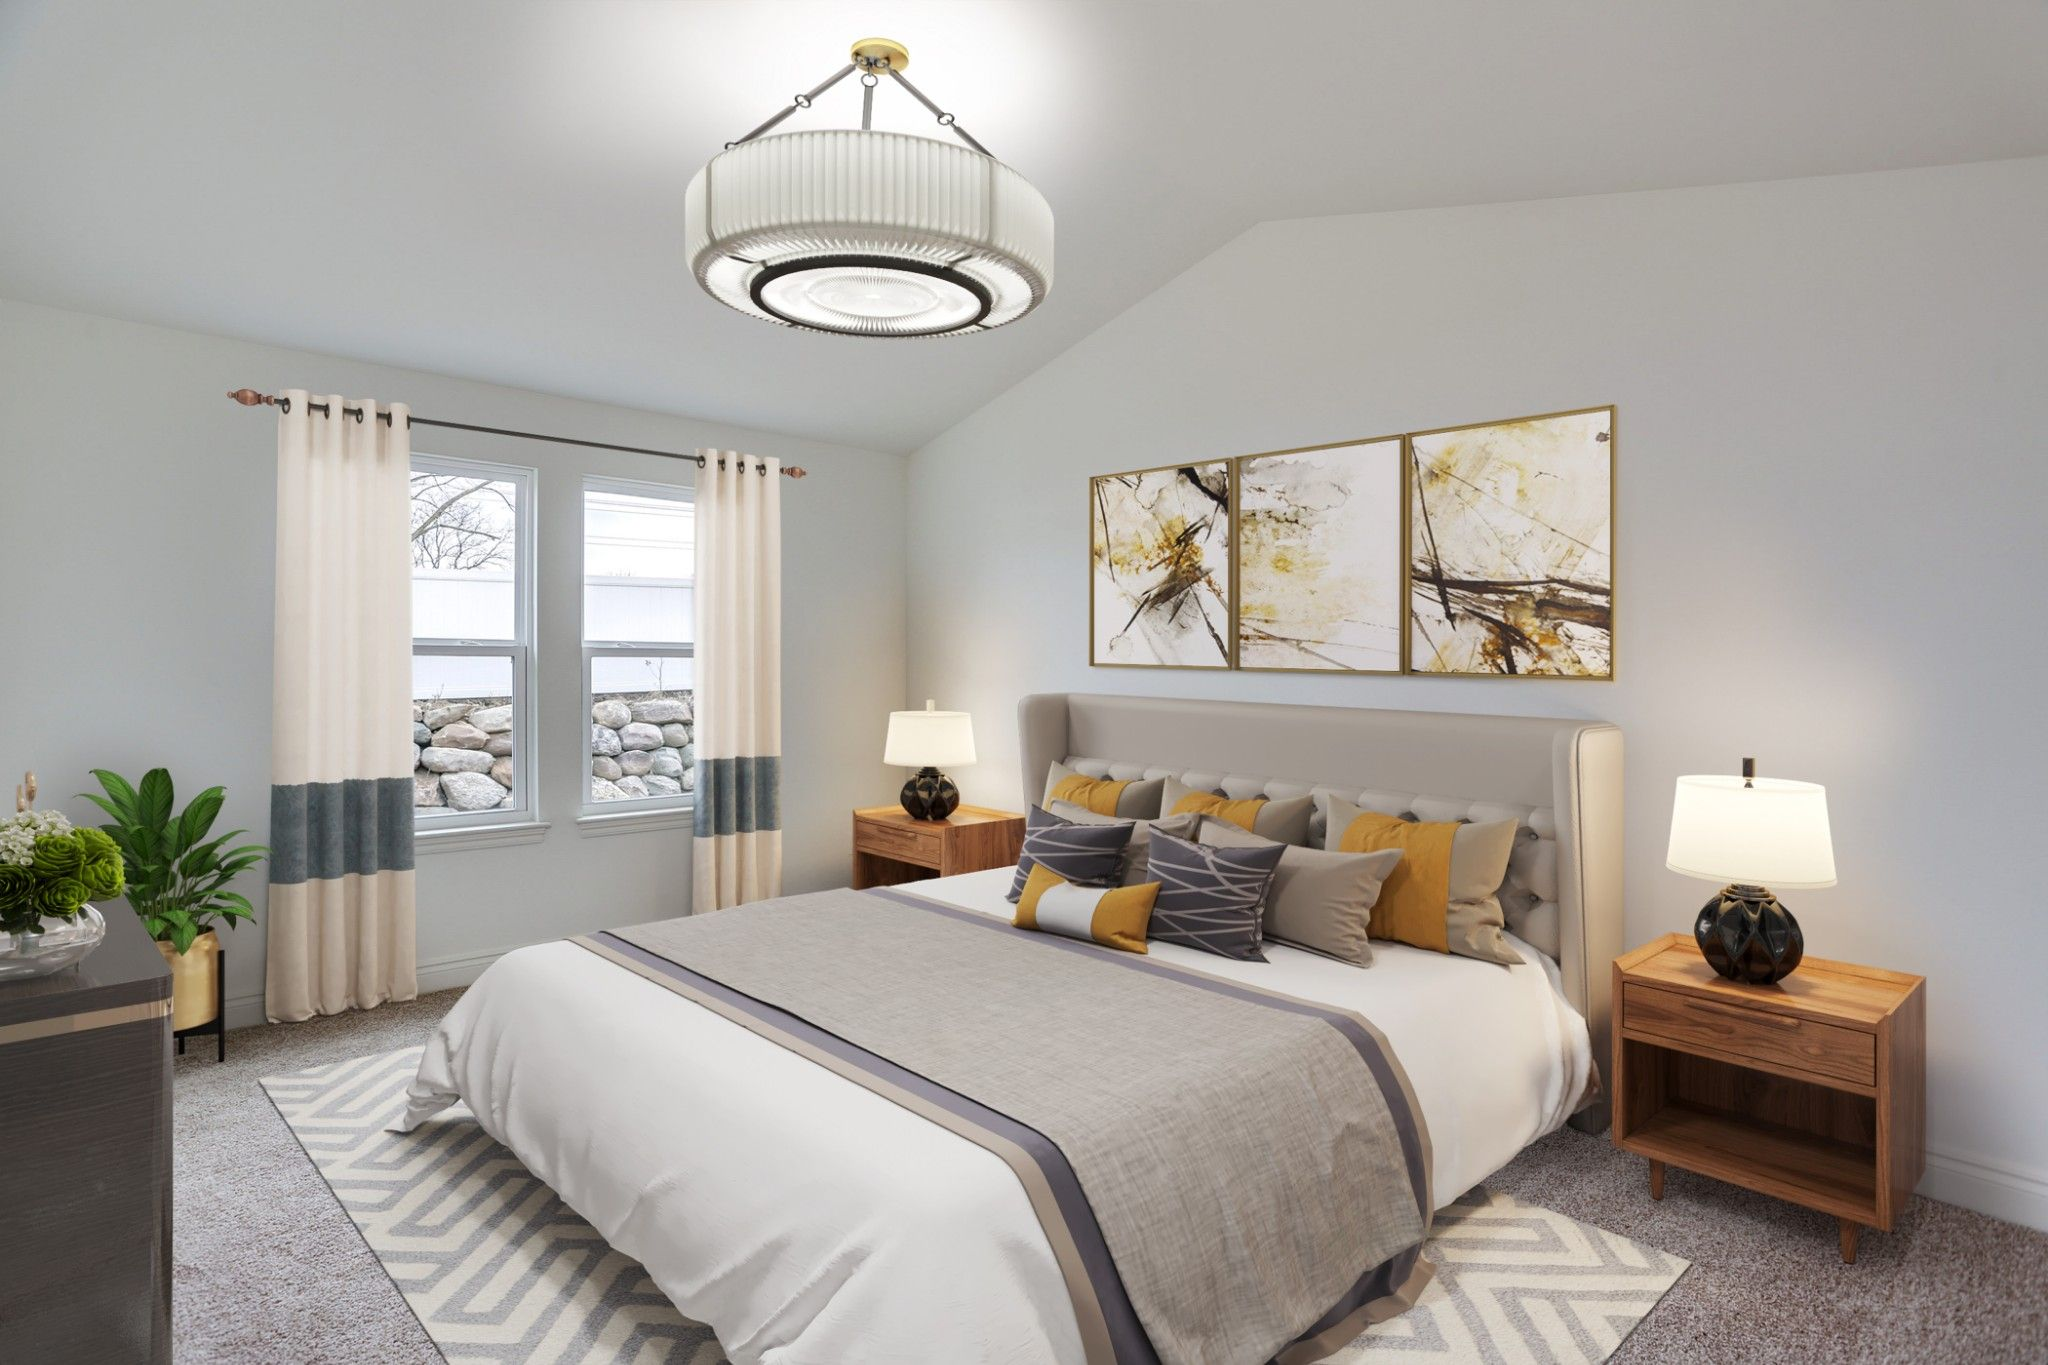 Bedroom featured in the Richmond at Lakeview By Robertson Brothers  in Detroit, MI